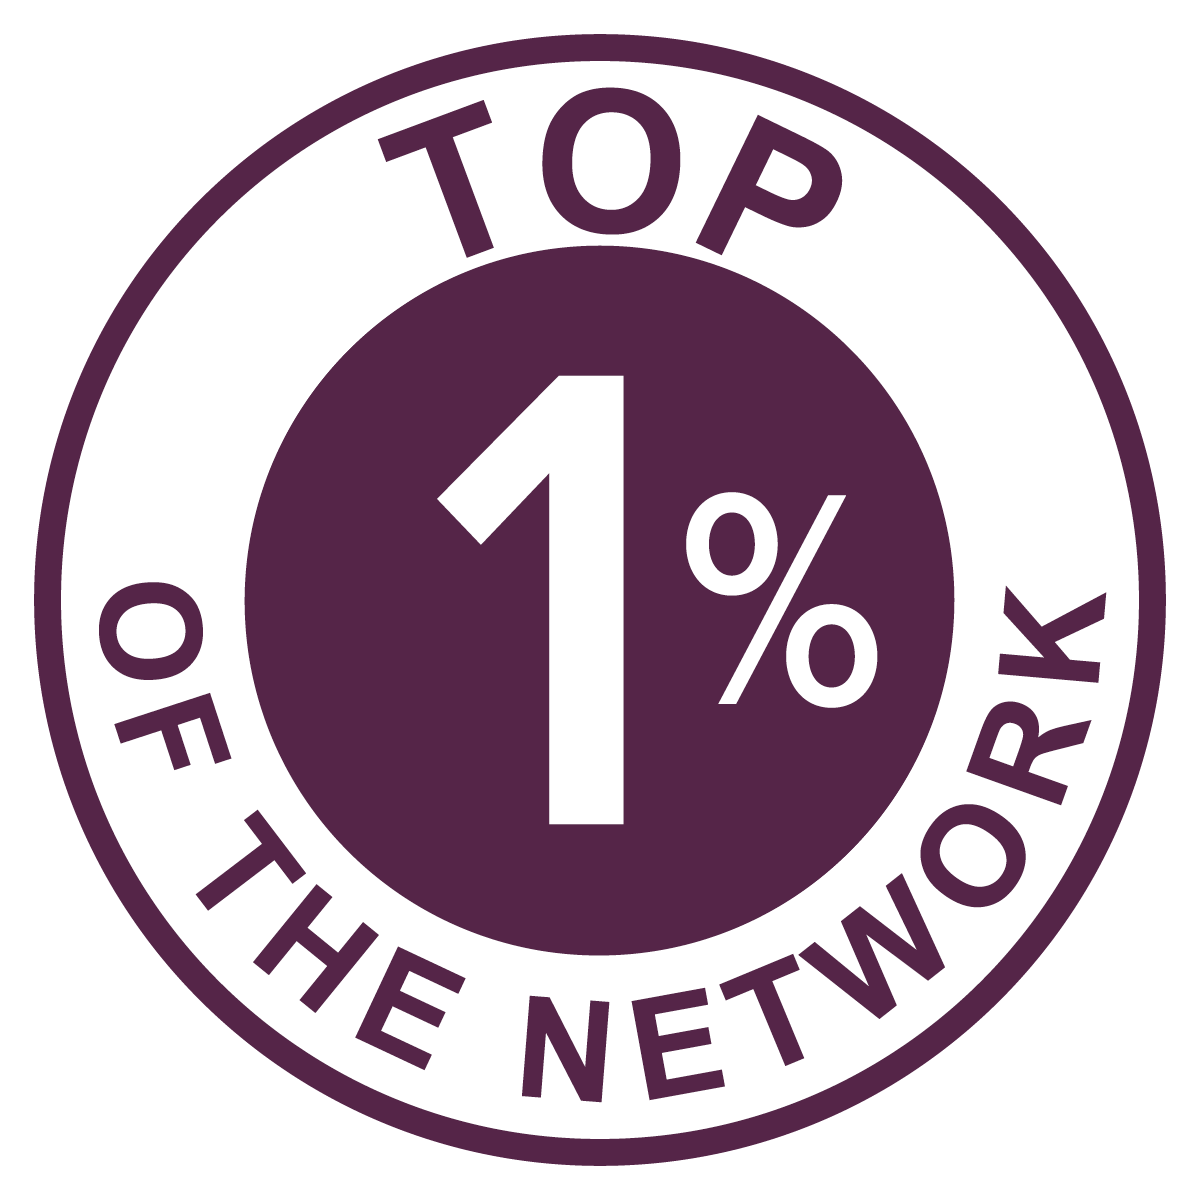 top two percent of the network